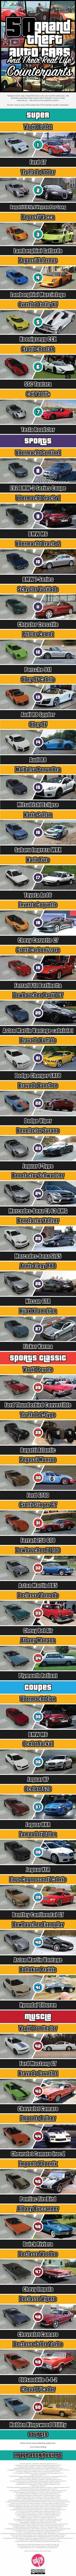 50 GTA Cars and Their Real Life Counterparts